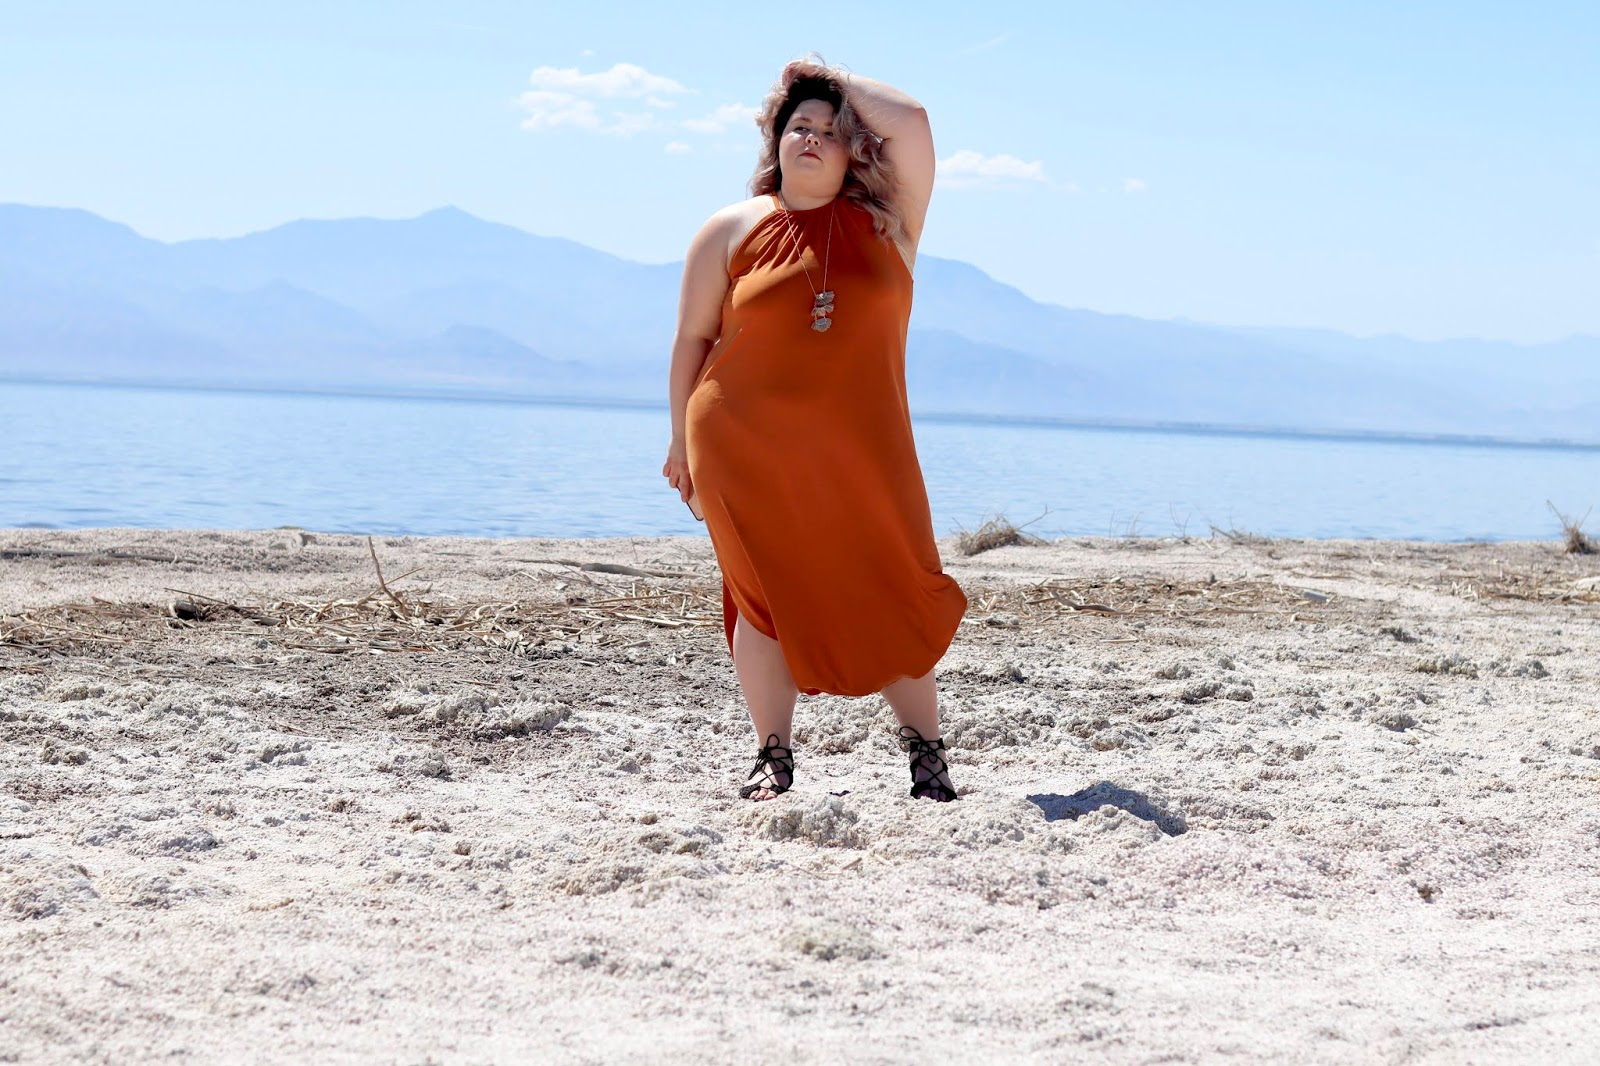 Chicago Plus Size Petite Fashion Blogger, YouTuber, and model Natalie Craig, of Natalie in the City, reviews Fashion Nova Curve's maxi dresses and visits palm springs and the salton sea.